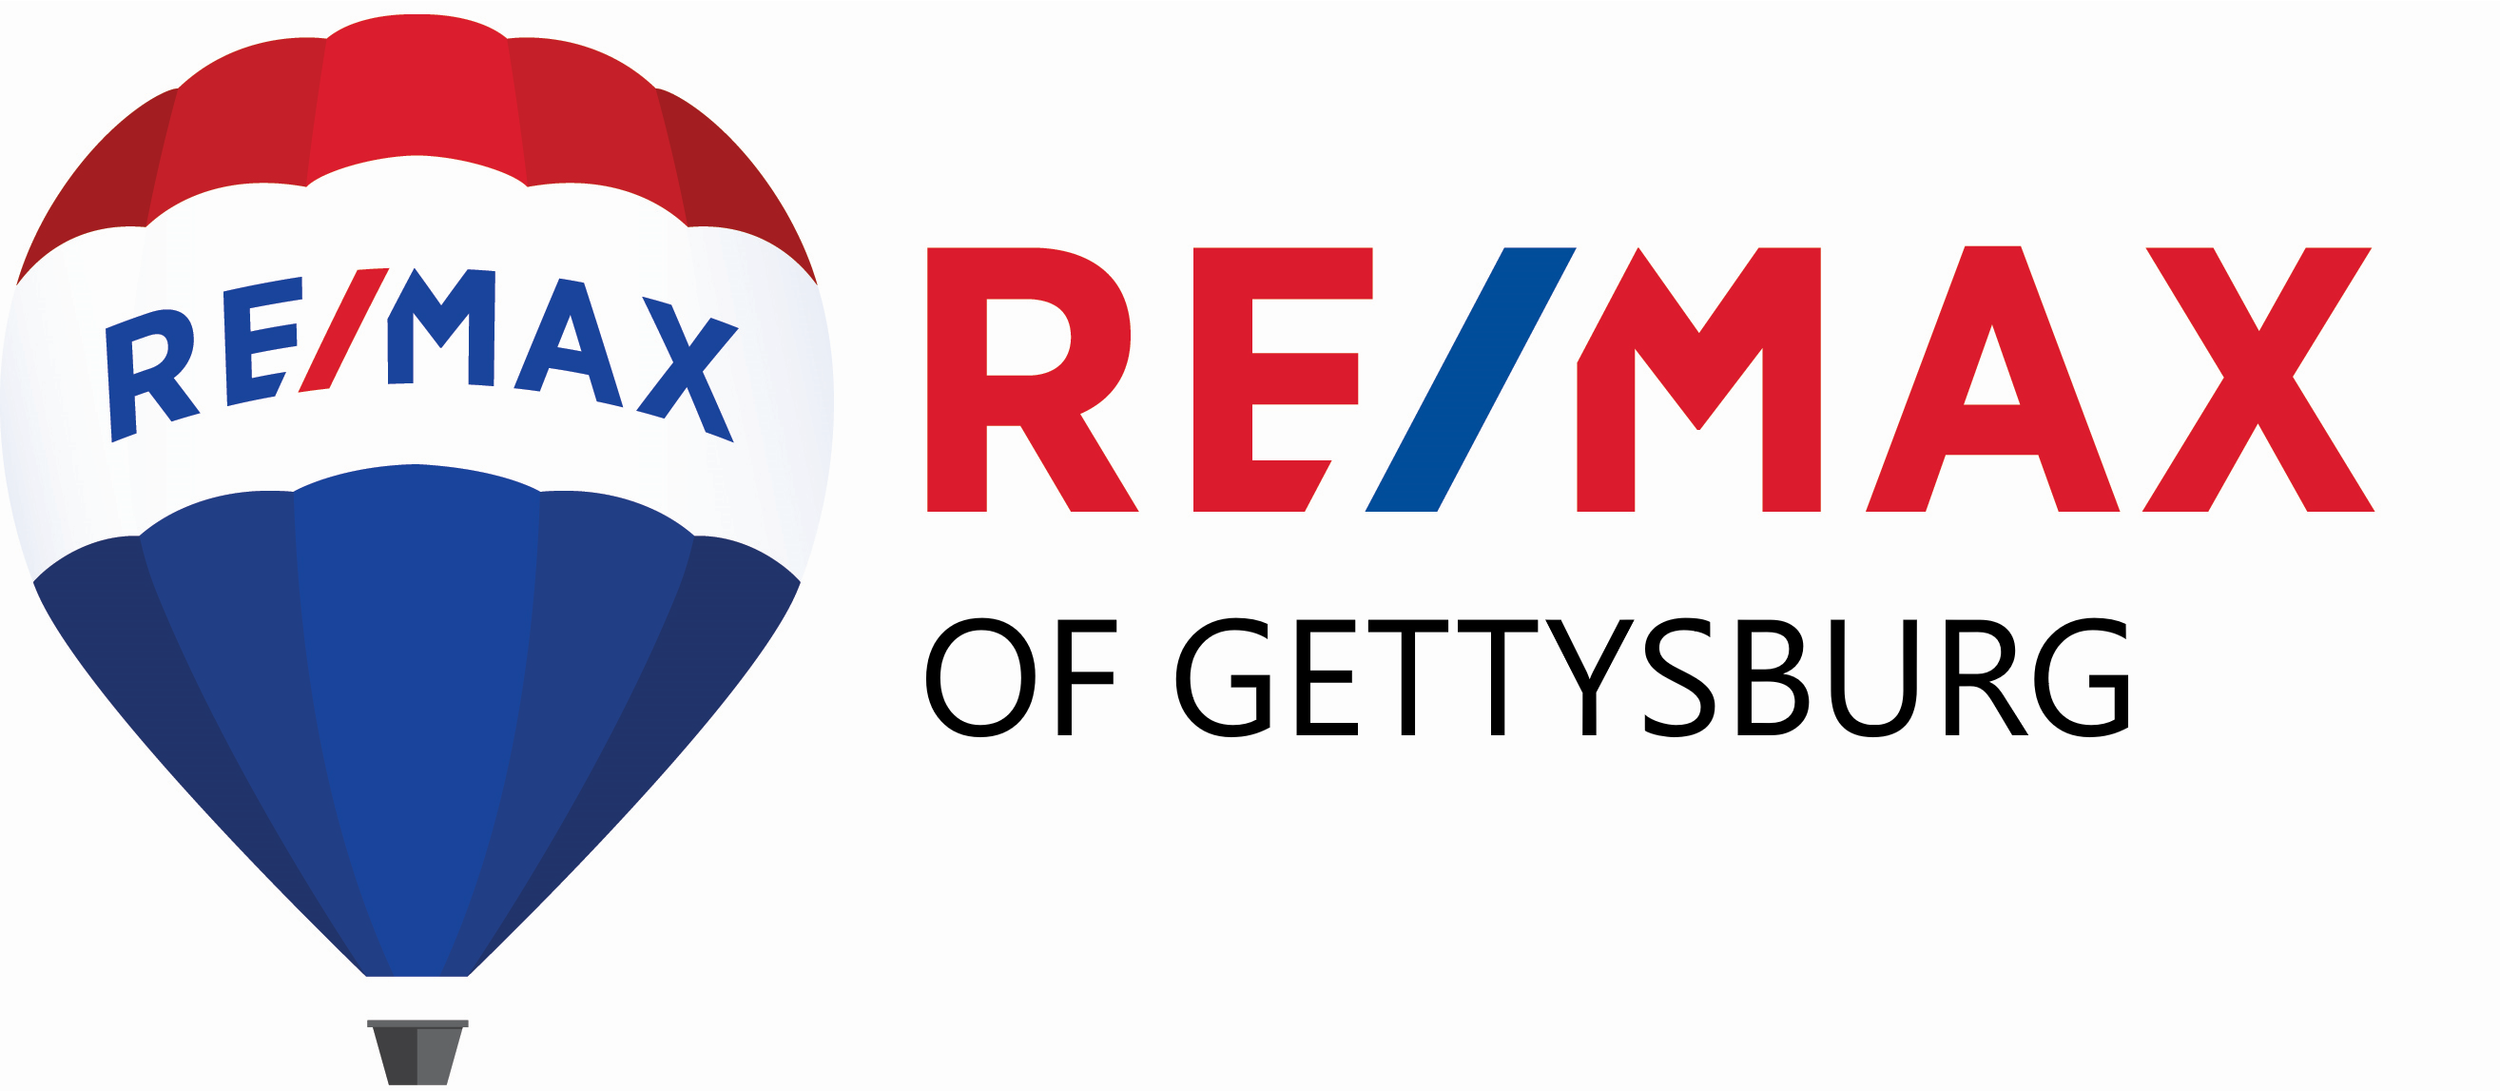 REMAX Of Gettysburg w.Balloon2.png